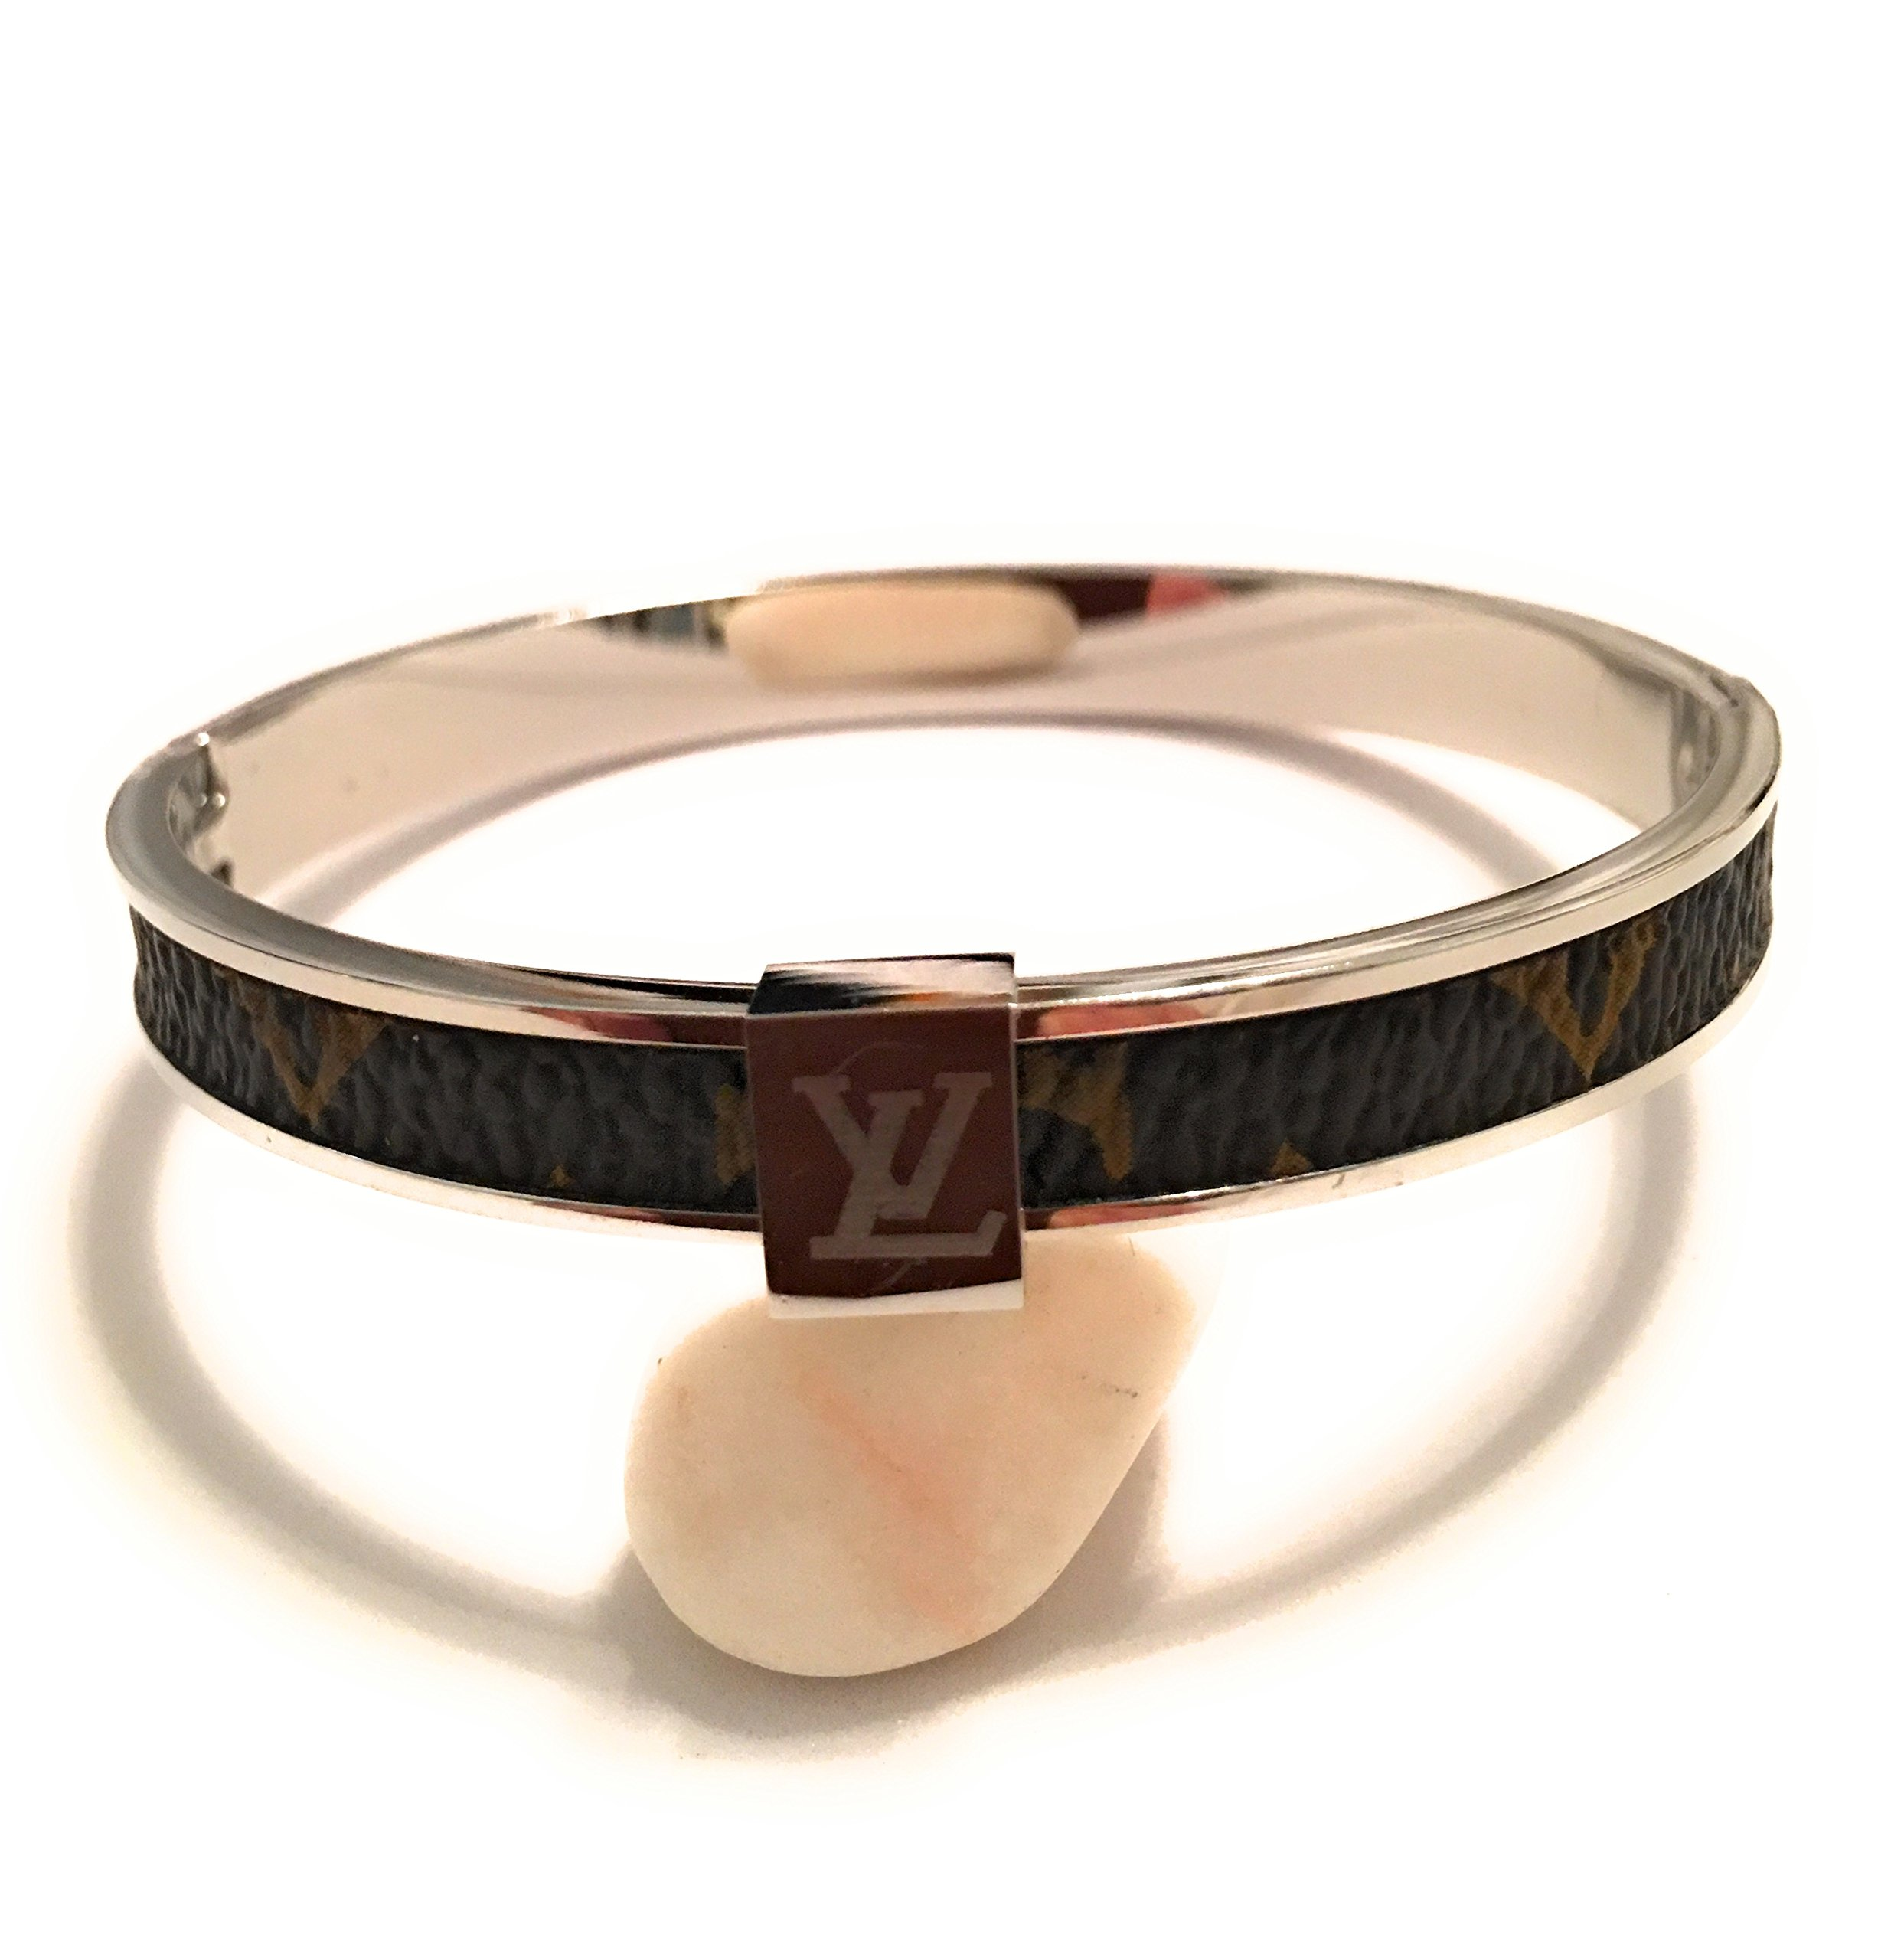 Louis Vuitton Woman Luxury Cuff Wrap Silver Monogram Bracelets Silver Bangle Bracelet